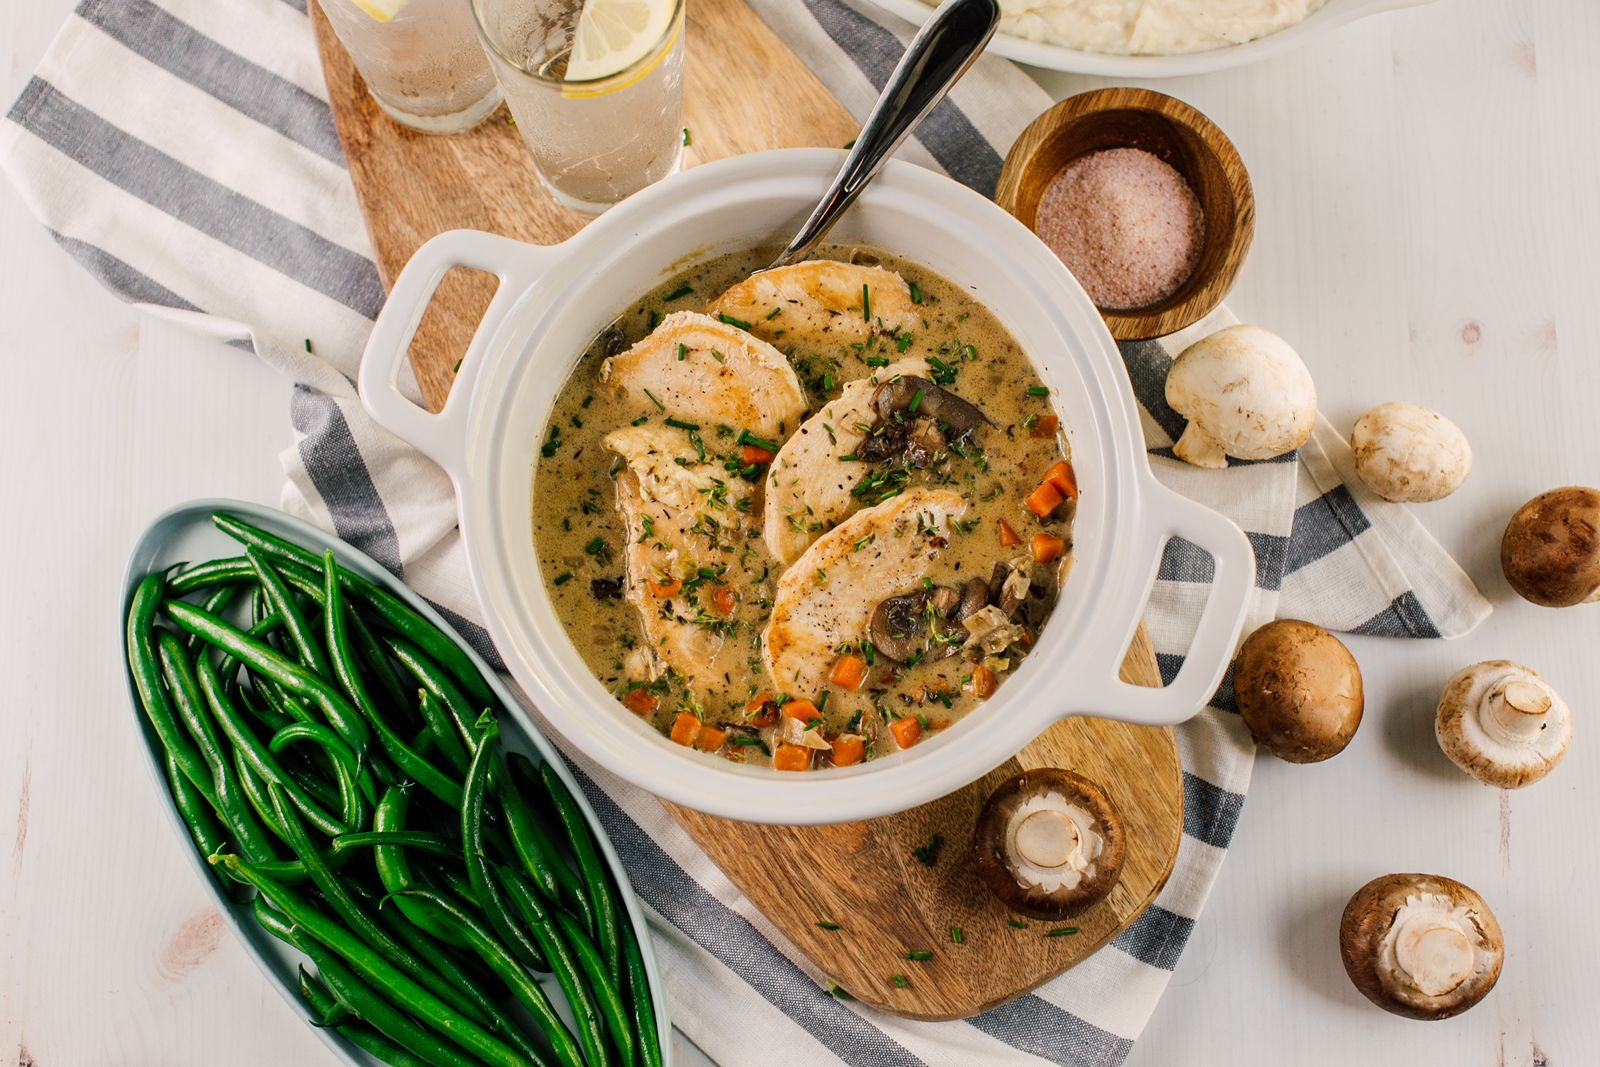 Dream Dinners' New Family Meal Kit Menu Now Available Nationwide